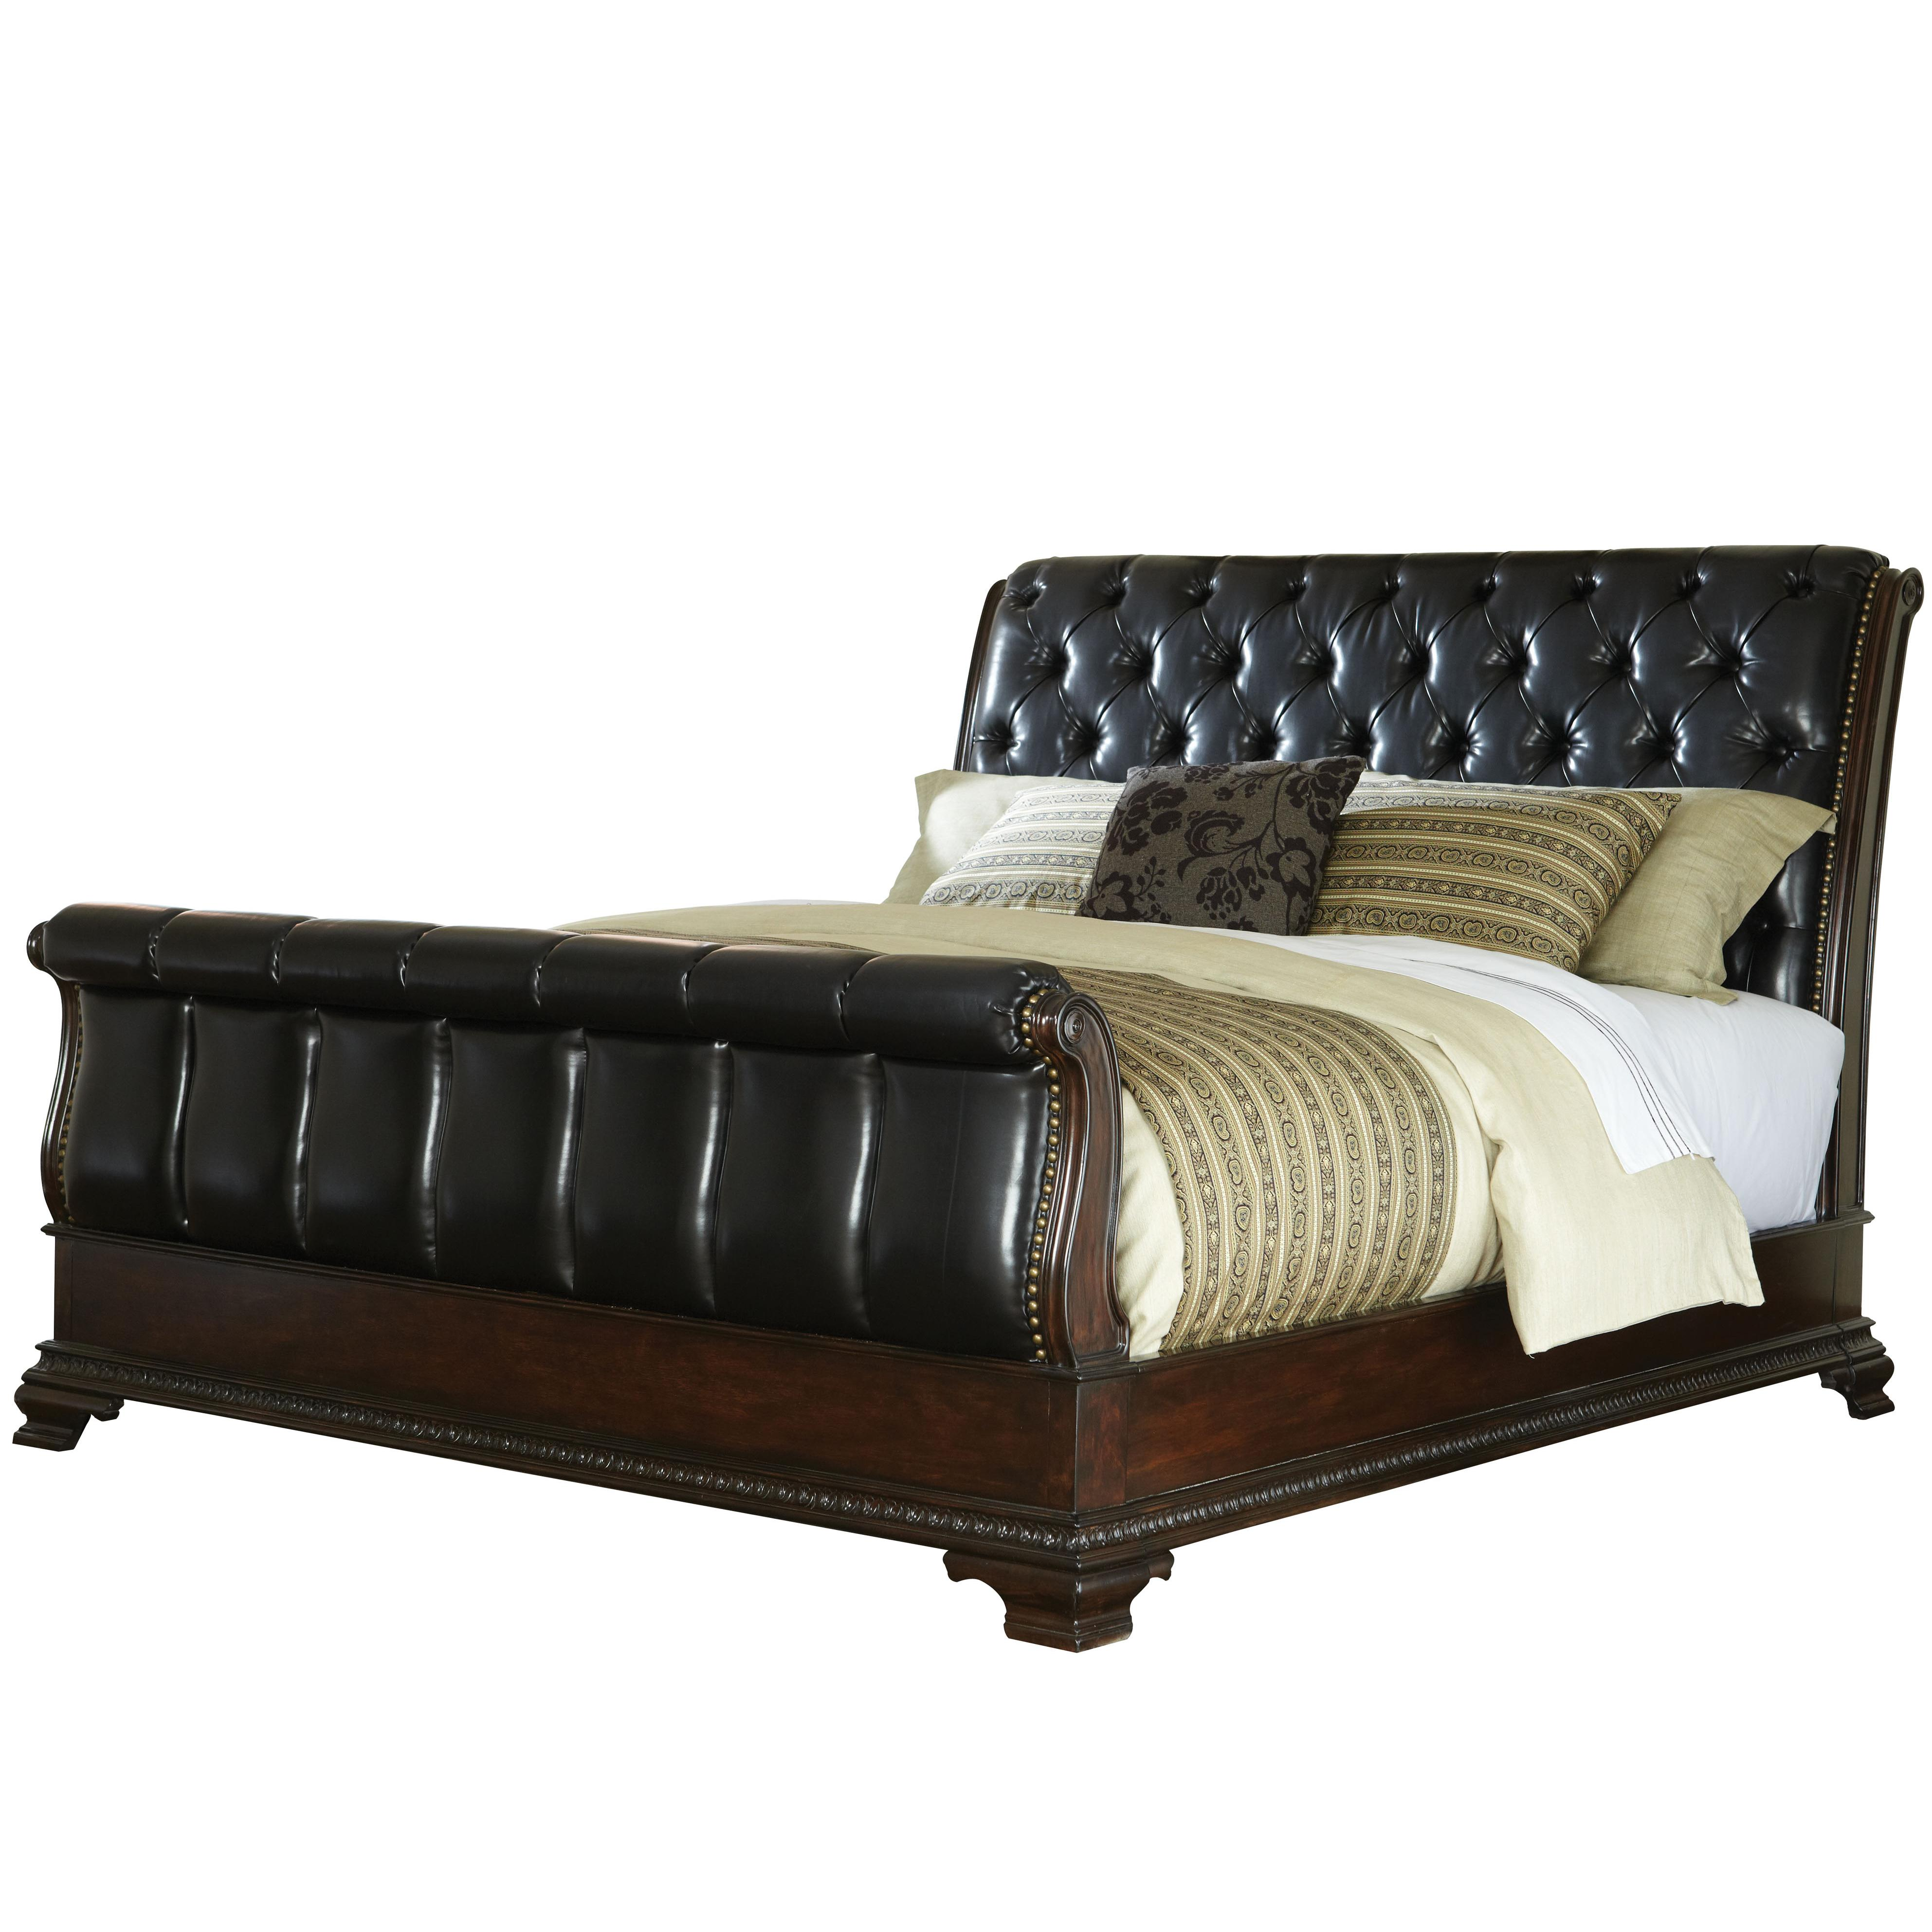 Standard Furniture Churchill  Queen Upholstered Sleigh Bed - Item Number: 86021+86022+86023